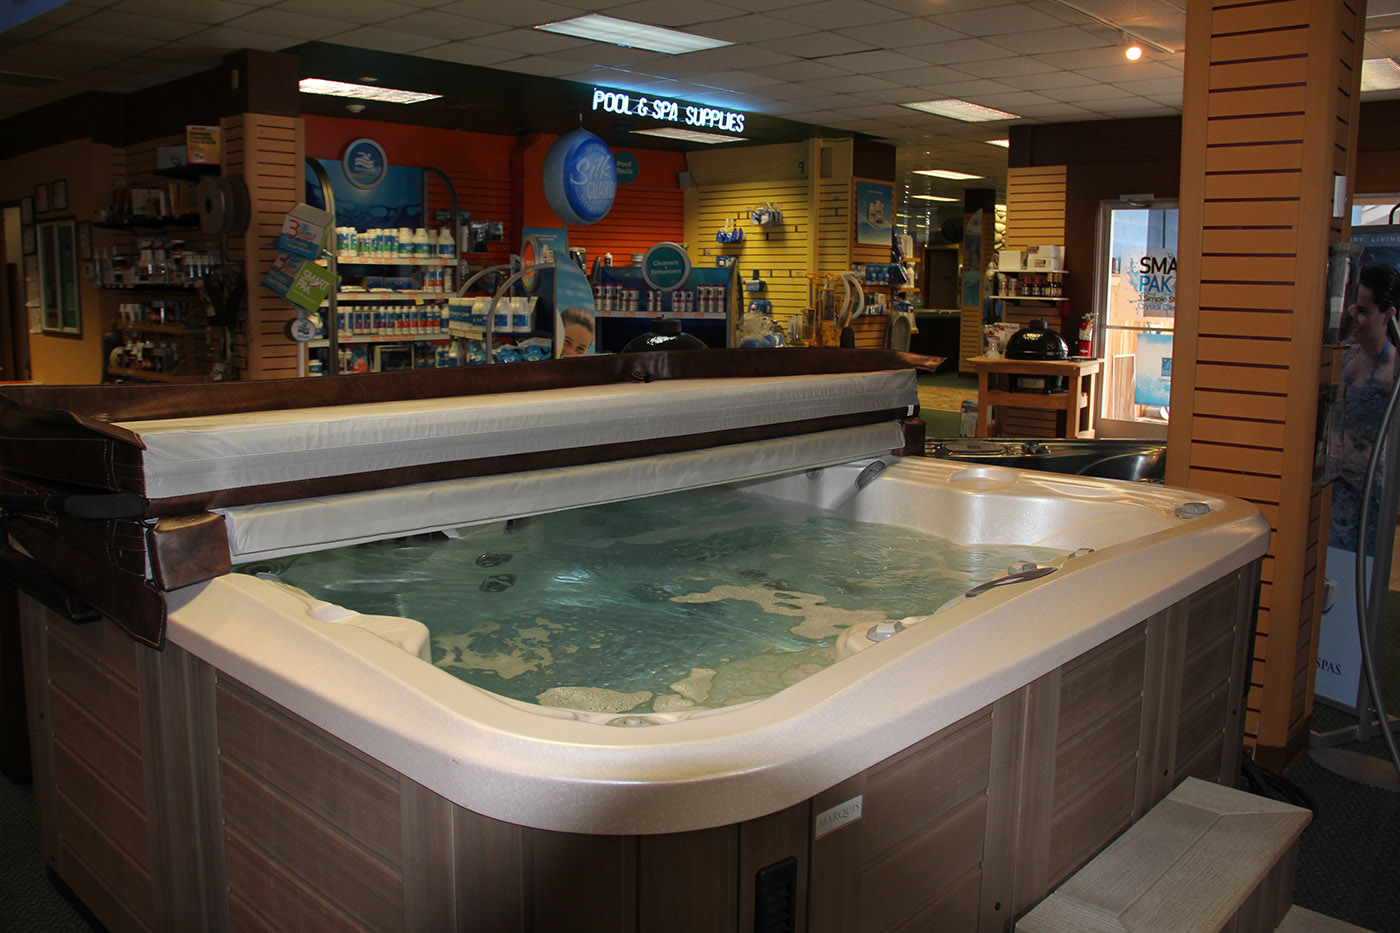 Best Fireplace Stove Pool And Spas Dealer In Fircrest